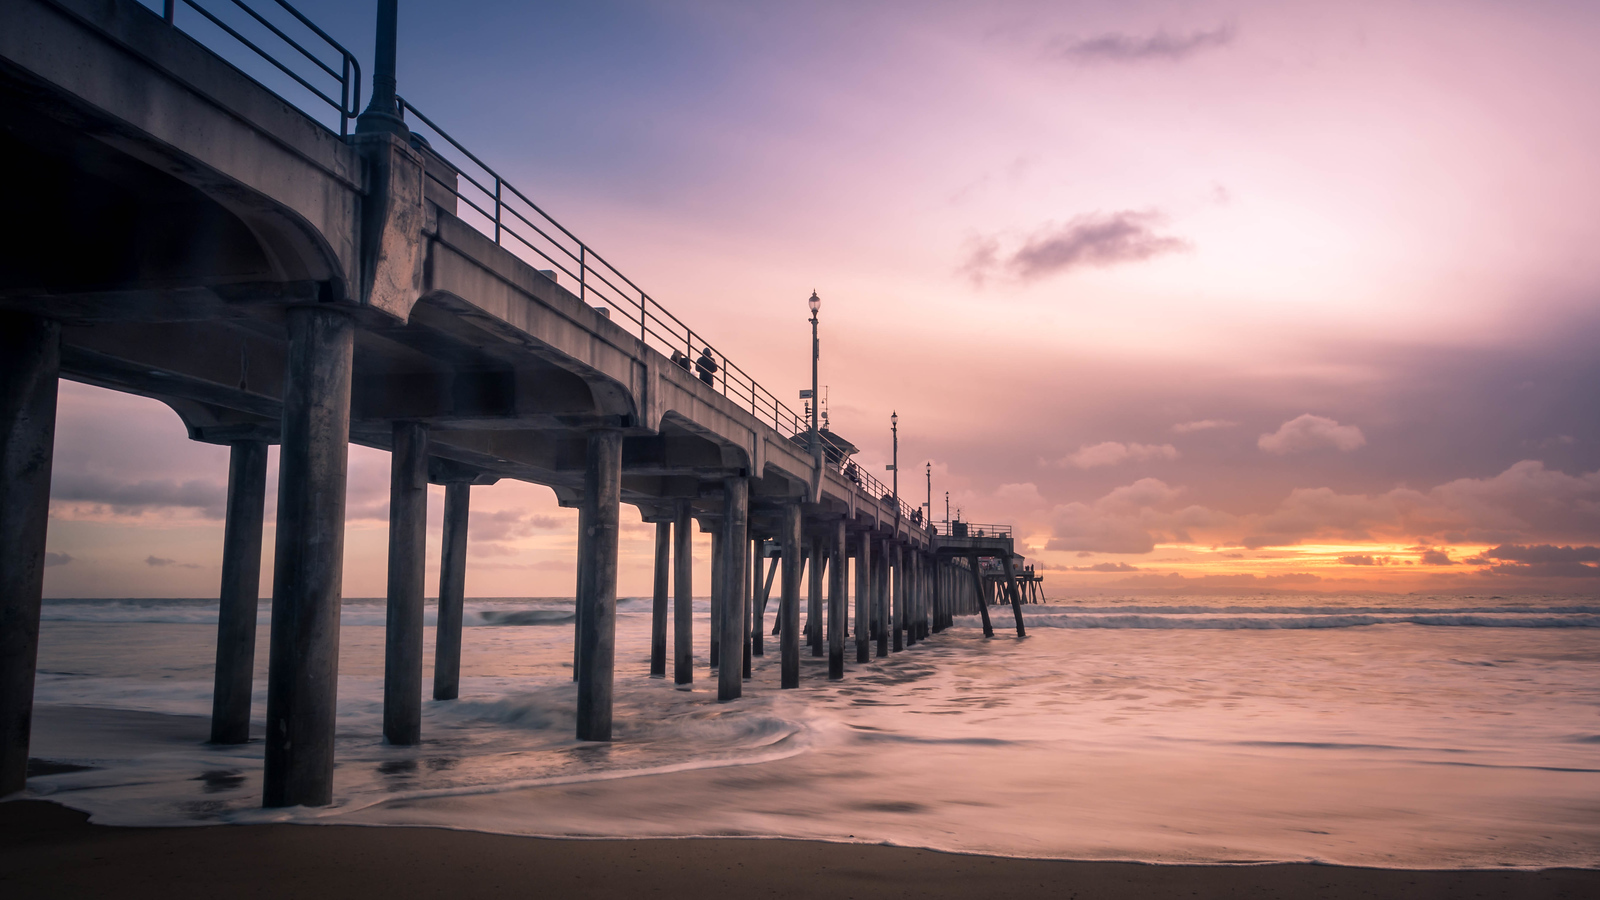 Beach Evening - Huntington Beach, CA, USA